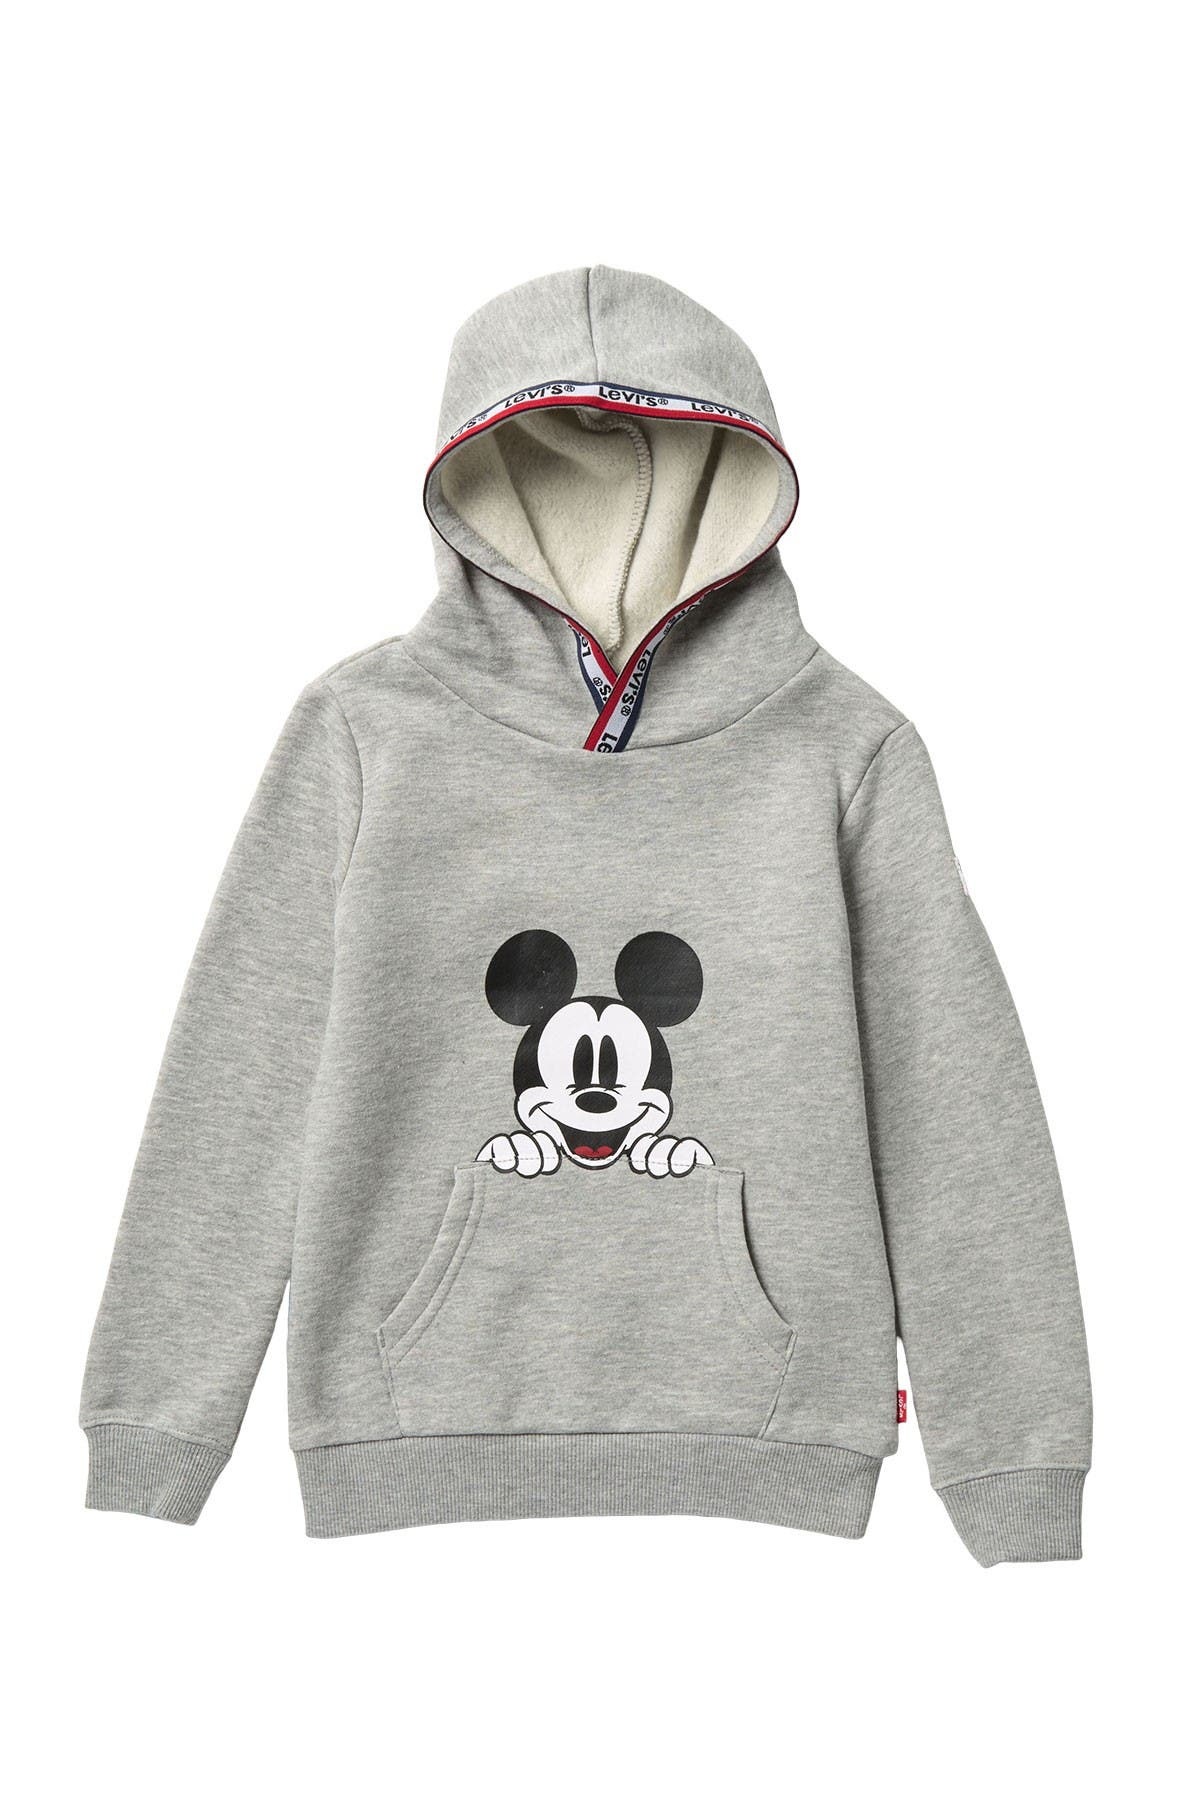 Image of Levi's Disney Mickey Mouse Pocket Hoodie